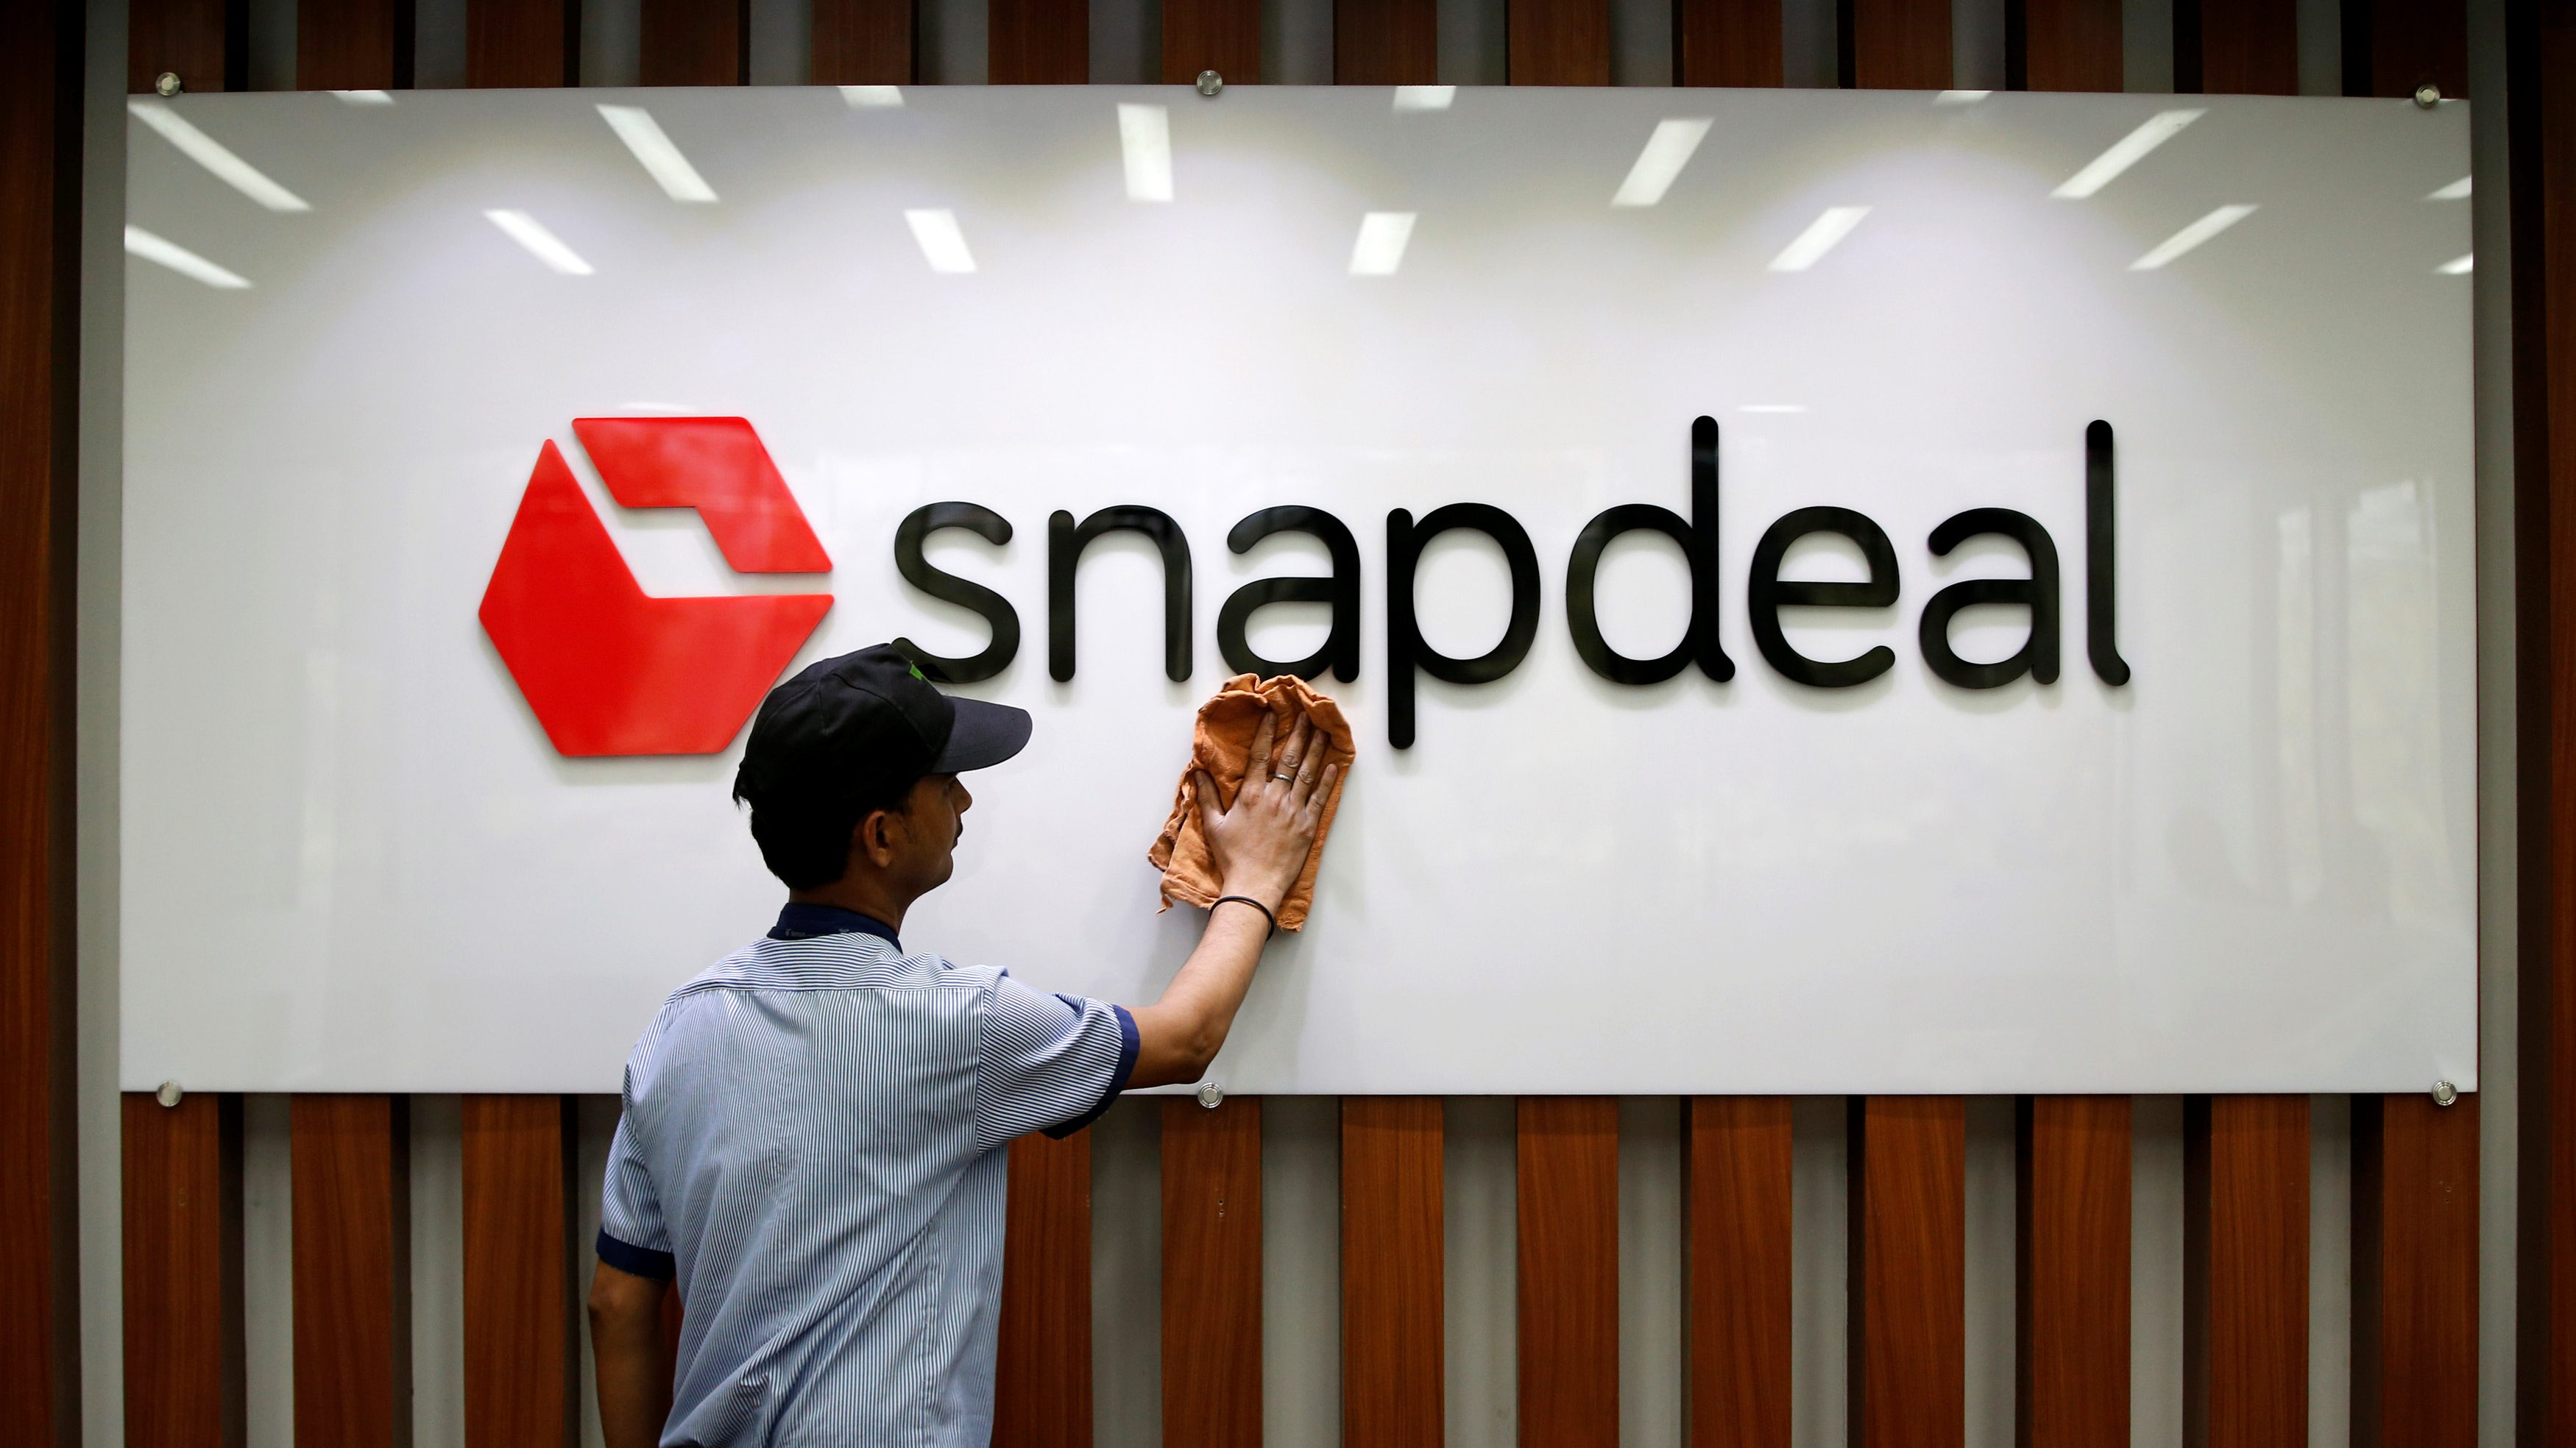 Flipkart no deal: Snapdeal must learn from Infibeam rather